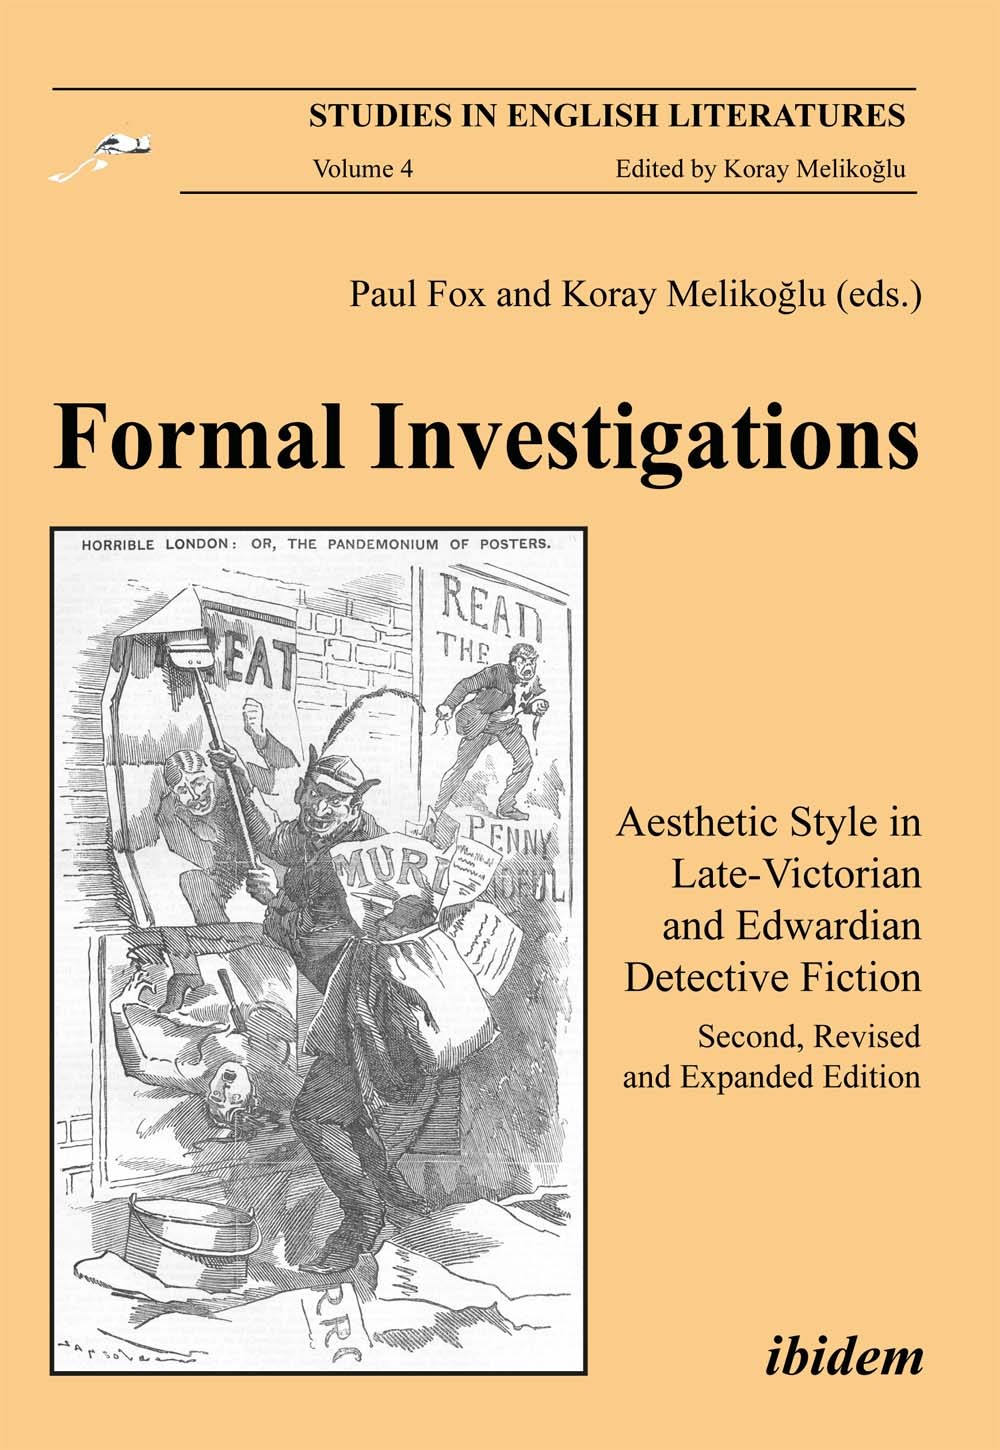 Formal Investigations: Aesthetic Style in Late-Victorian and Edwardian Detective Fiction